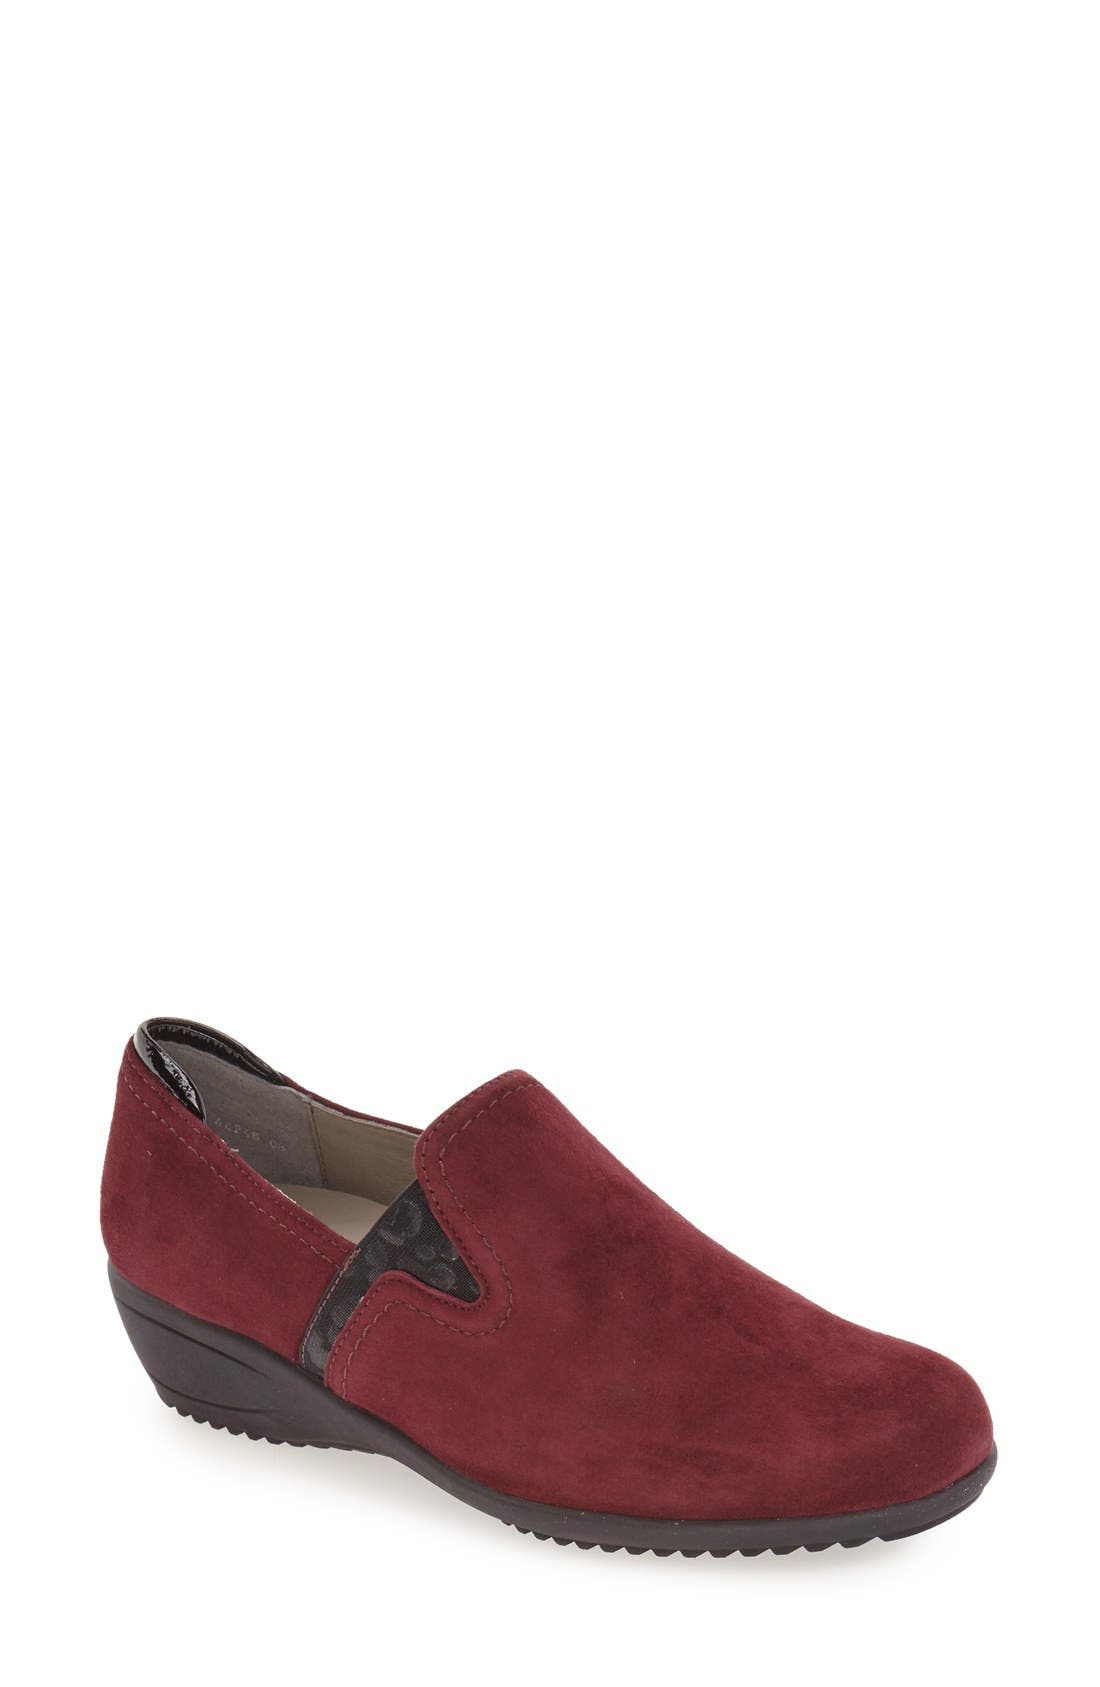 'Lilli' Wedge Loafer,                             Main thumbnail 1, color,                             Burgundy Suede